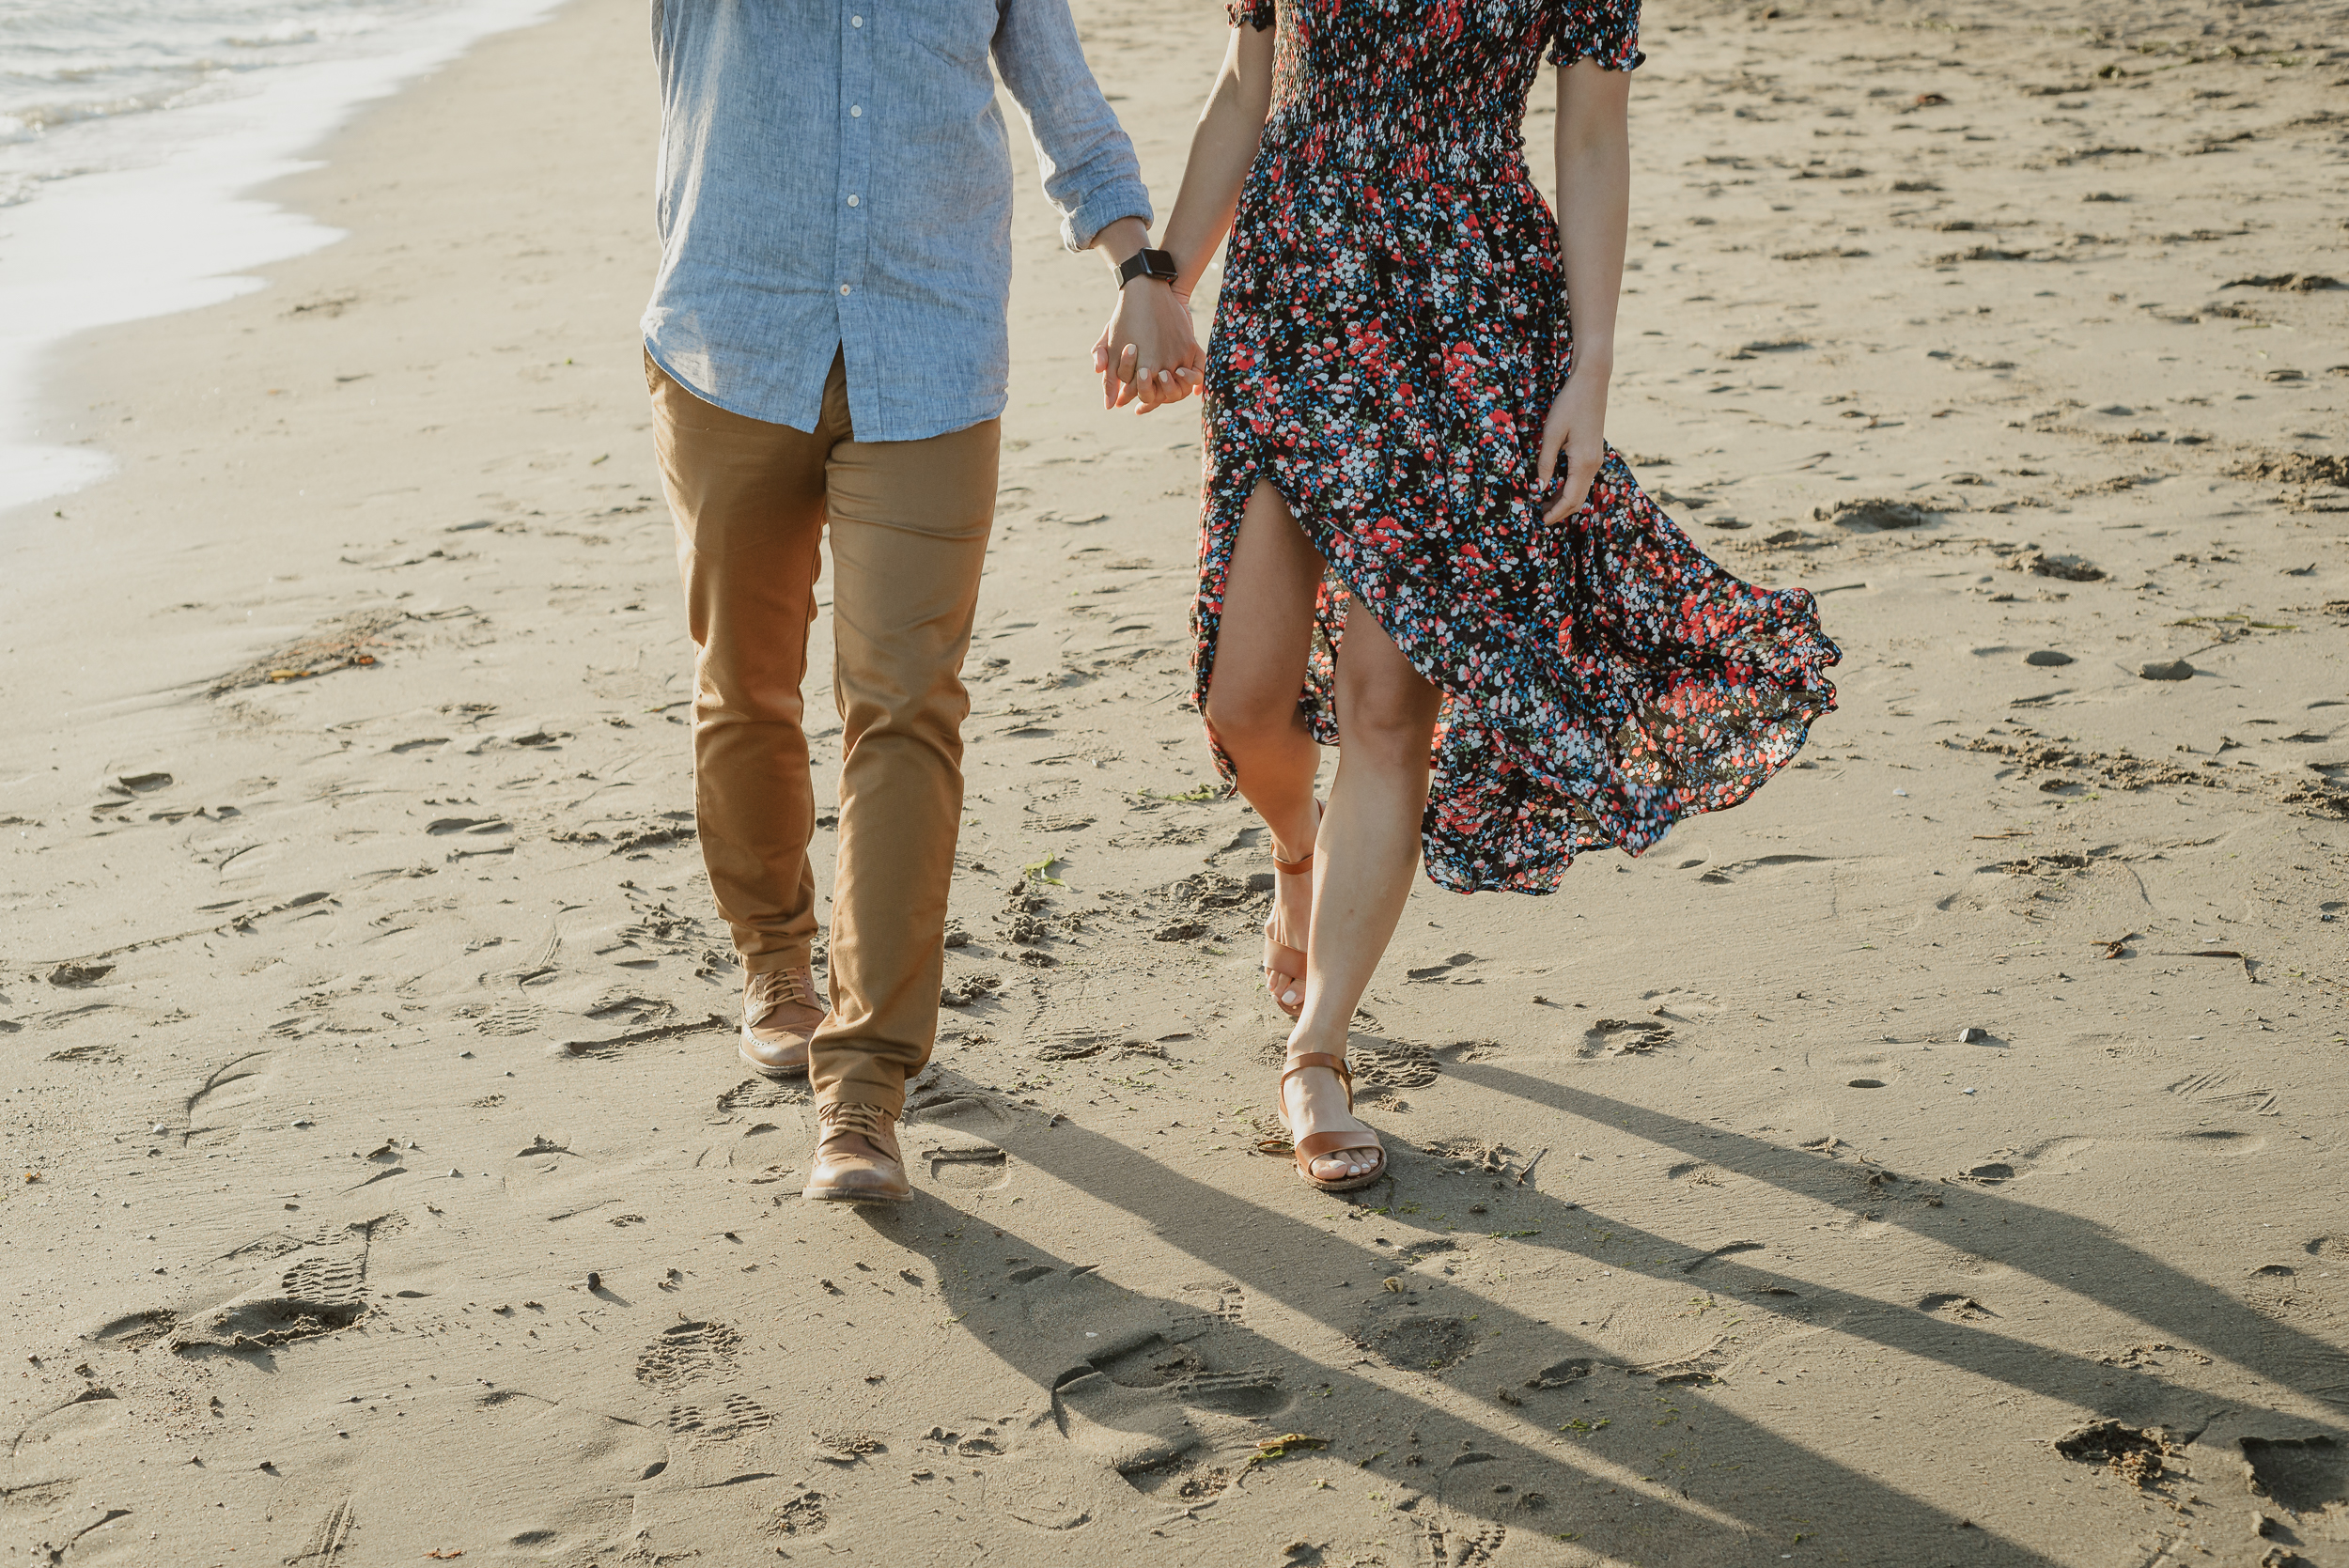 alameda-crown-memorial-state-beach-engagement-session-vivianchen-093.jpg